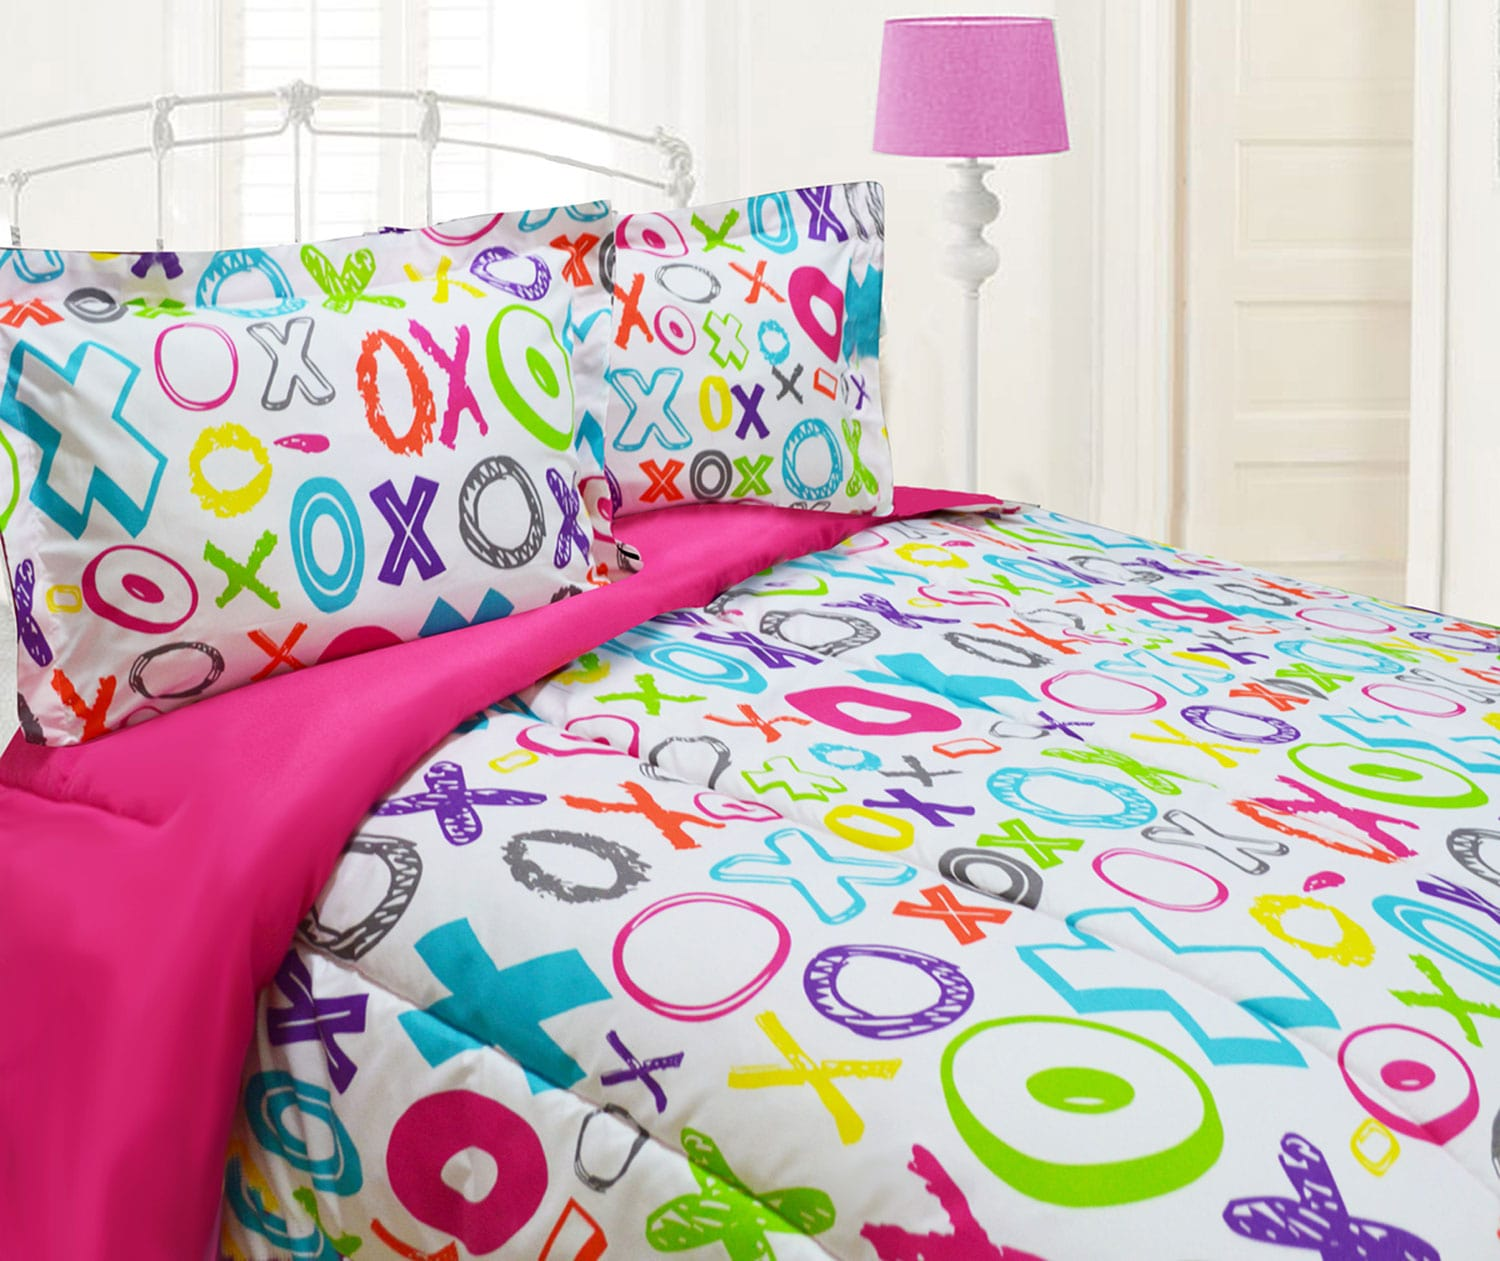 XOXO 3-Piece Full Comforter Set